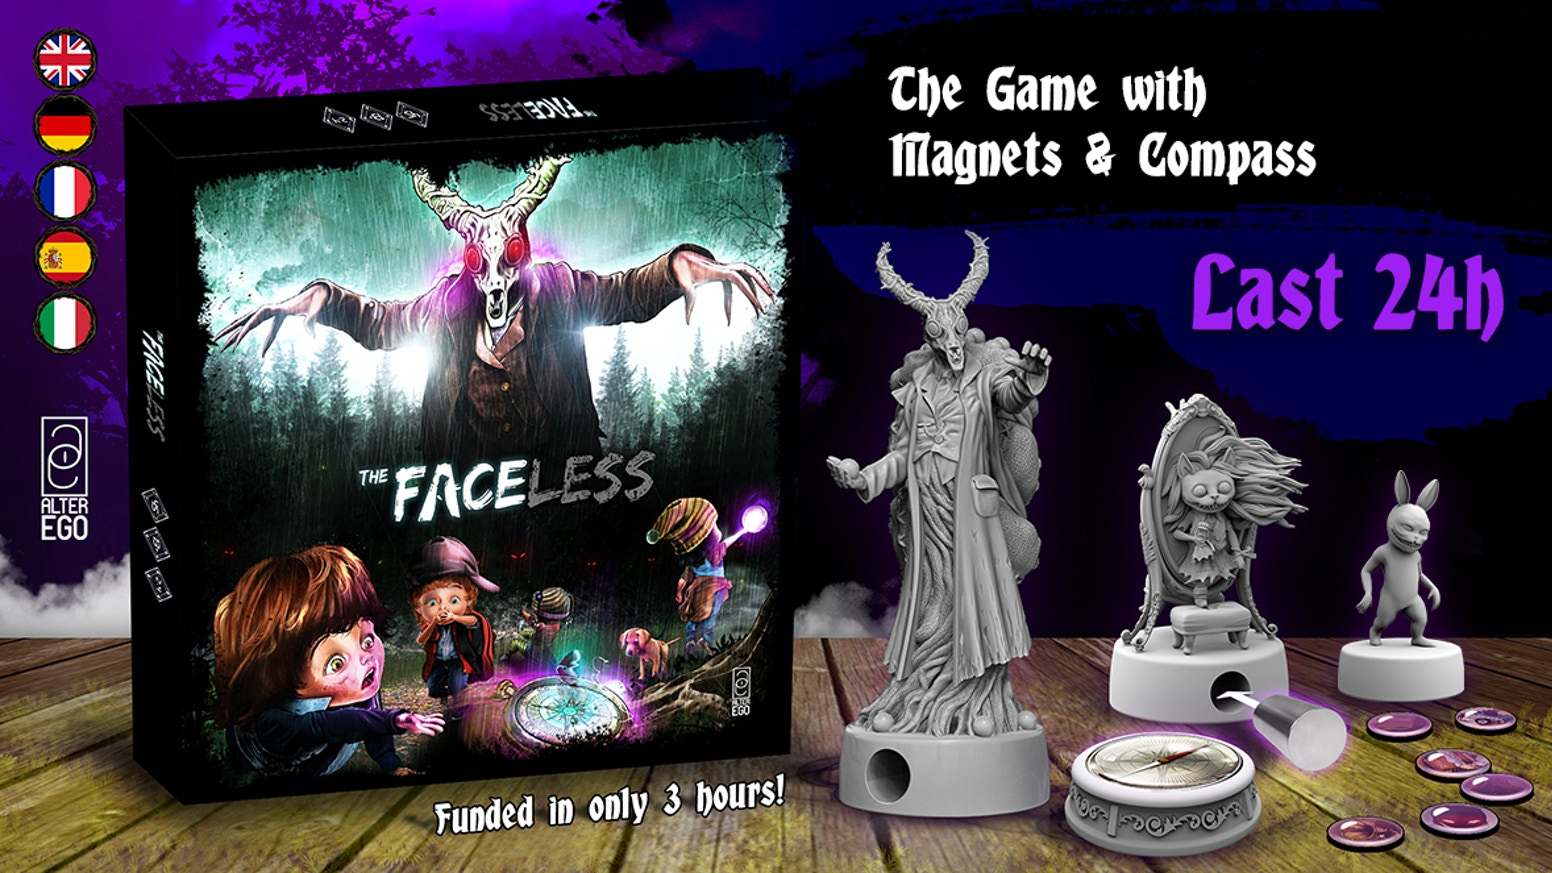 The Faceless is the top crowdfunding project launched today. The Faceless raised over $347112 from 5644 backers. Other top projects include Premium Estate Chocolate Colombia Carsilk - Blissful Desire, A wrestling-based film company; presenting: